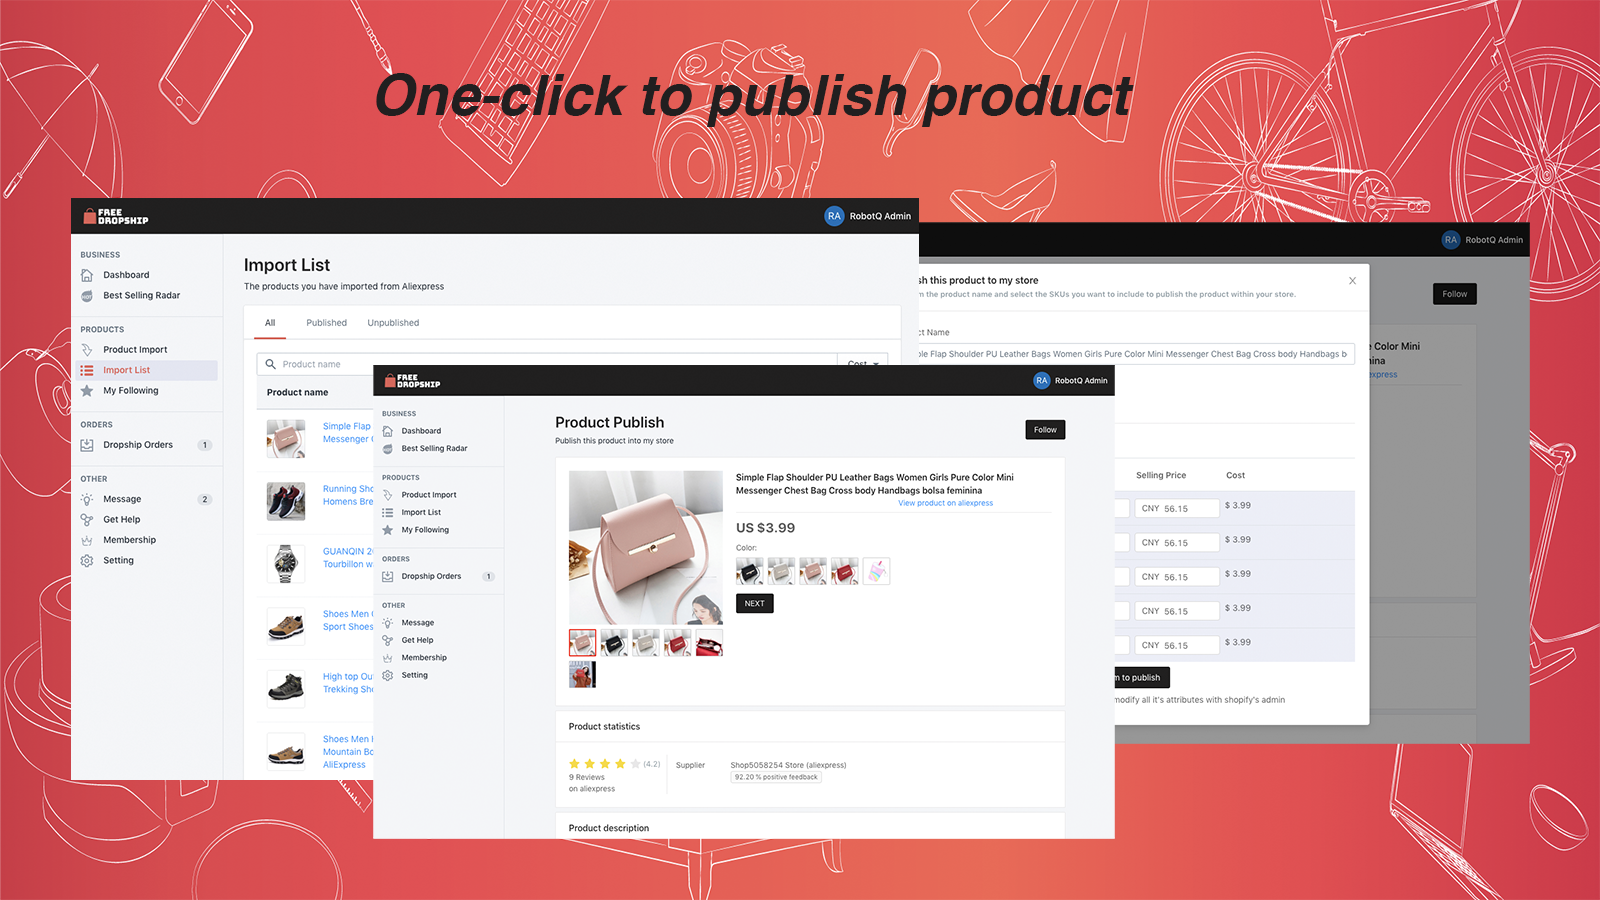 You can publish product after importing by one-click